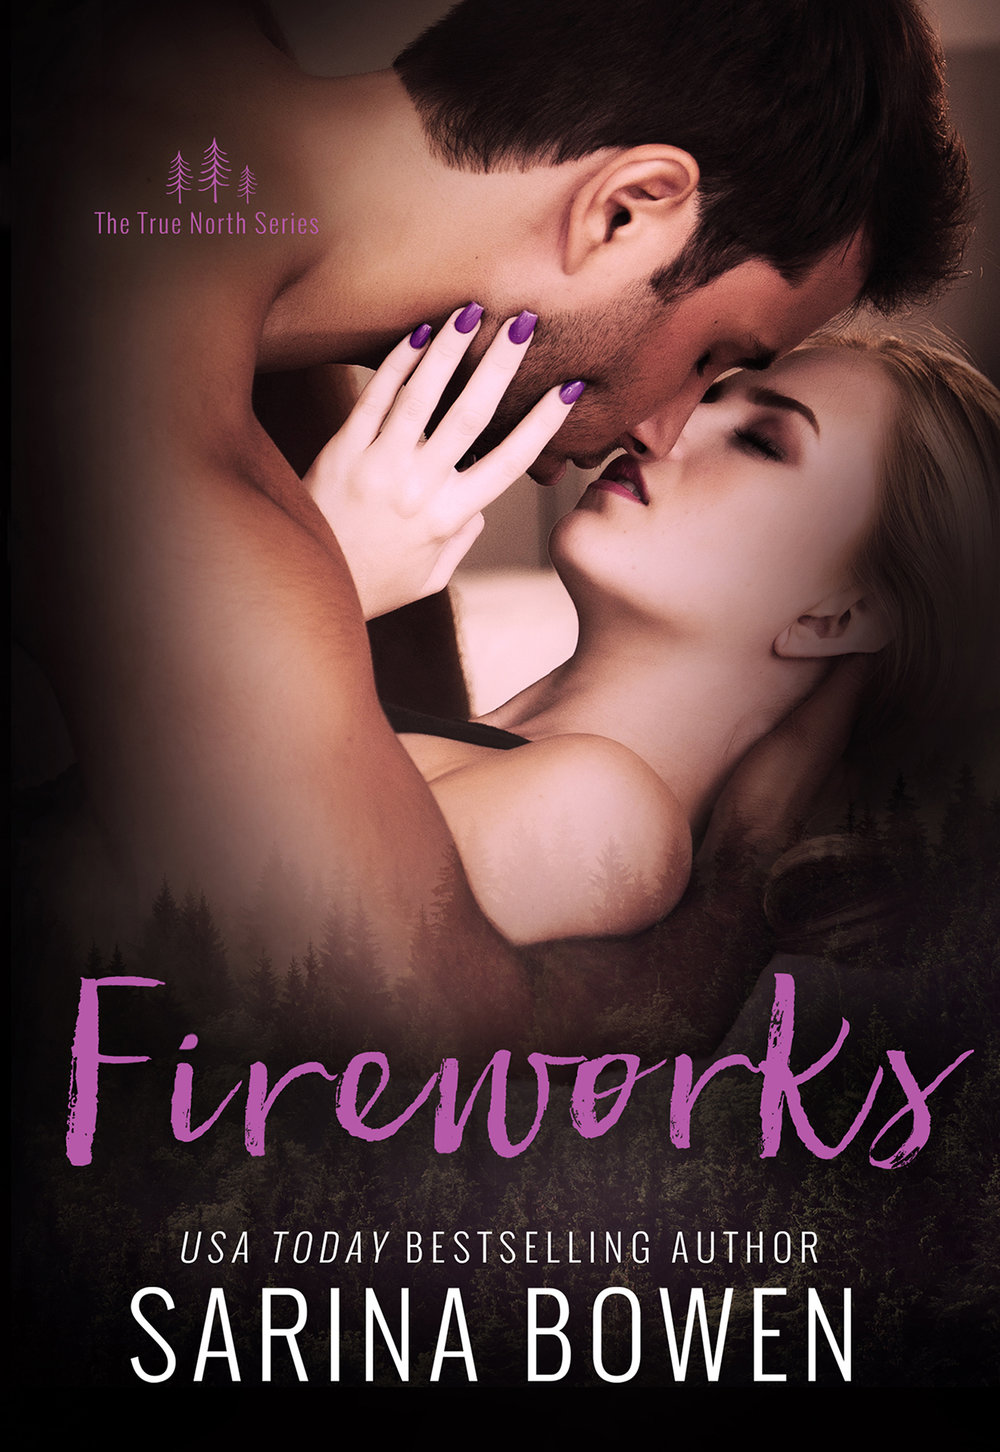 Fireworks by Sarina Bowen free to read online